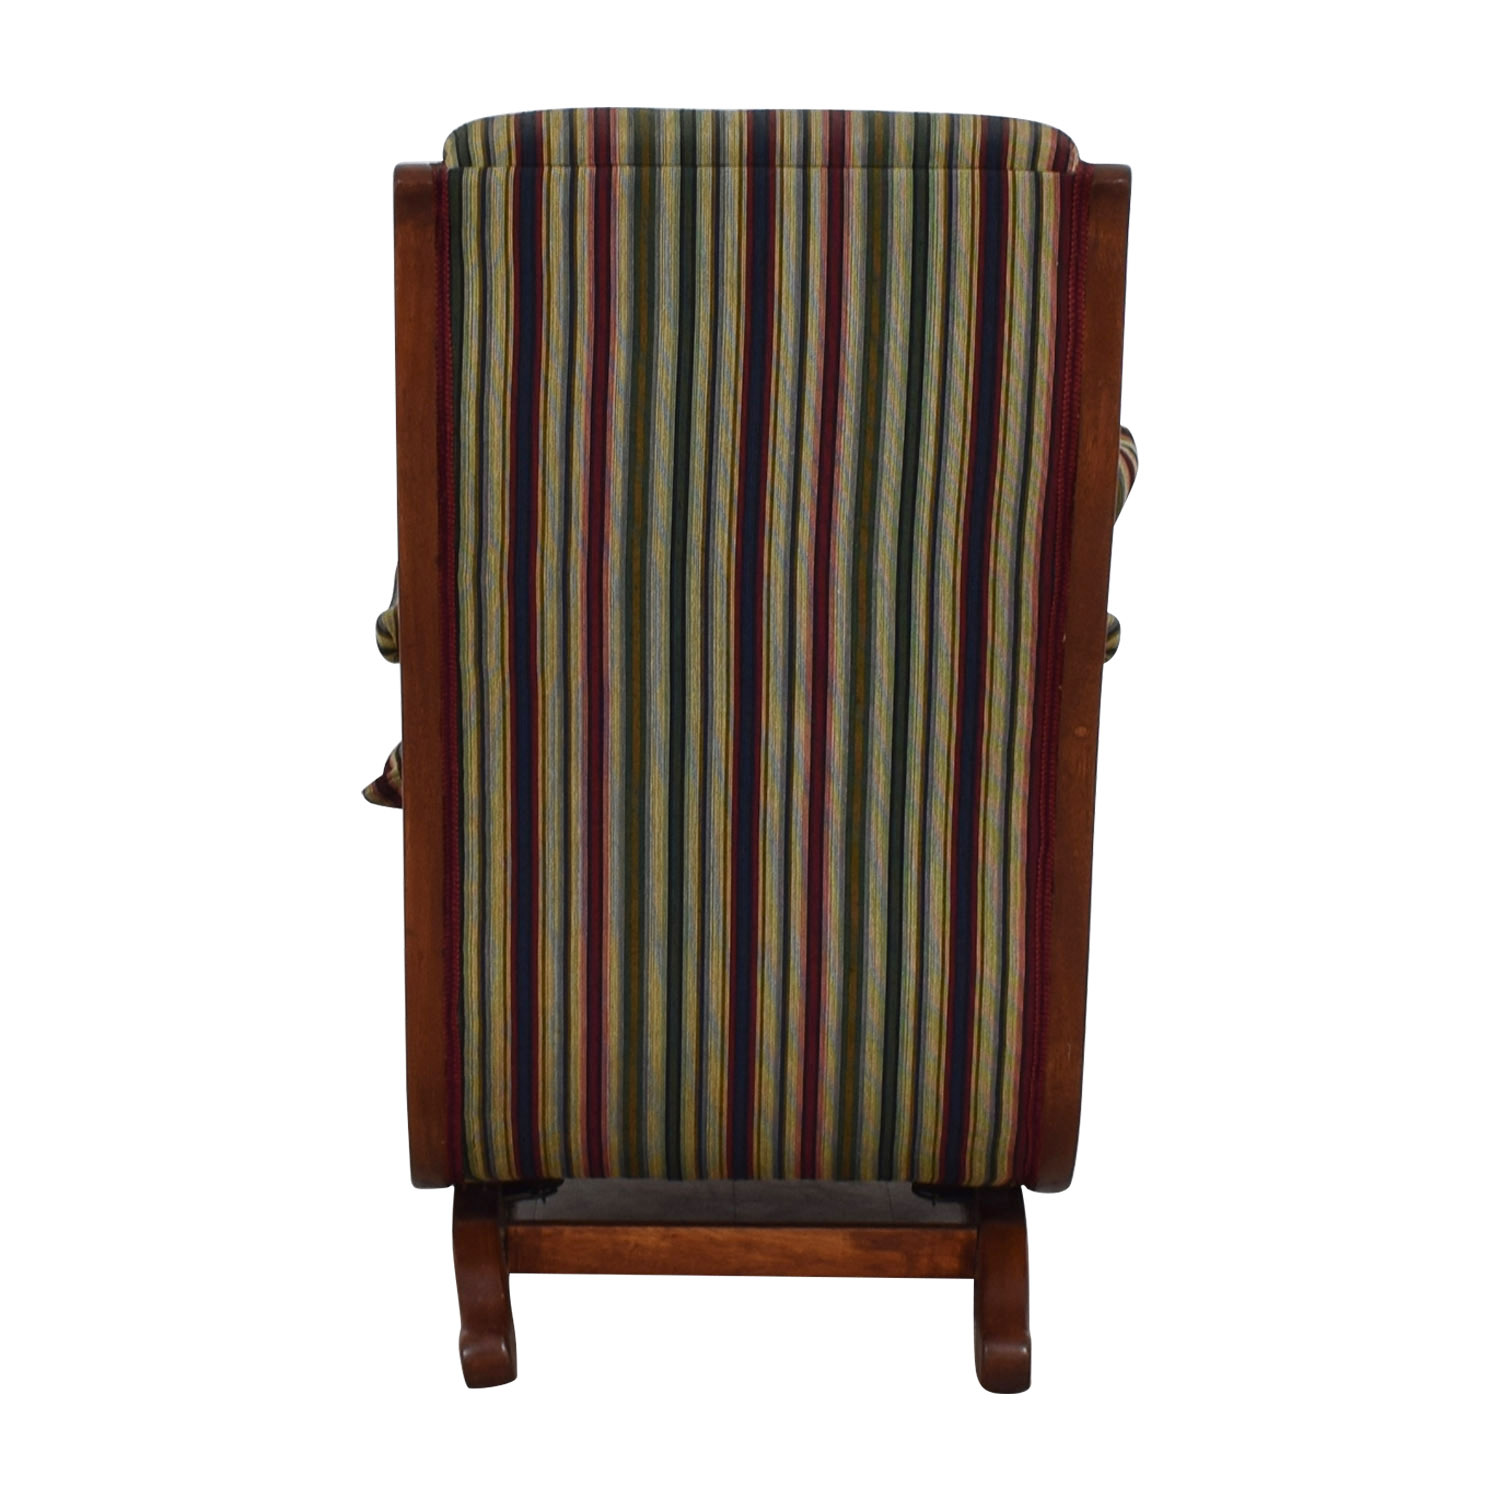 Cherry Gooseneck Striped Platform Rocker second hand